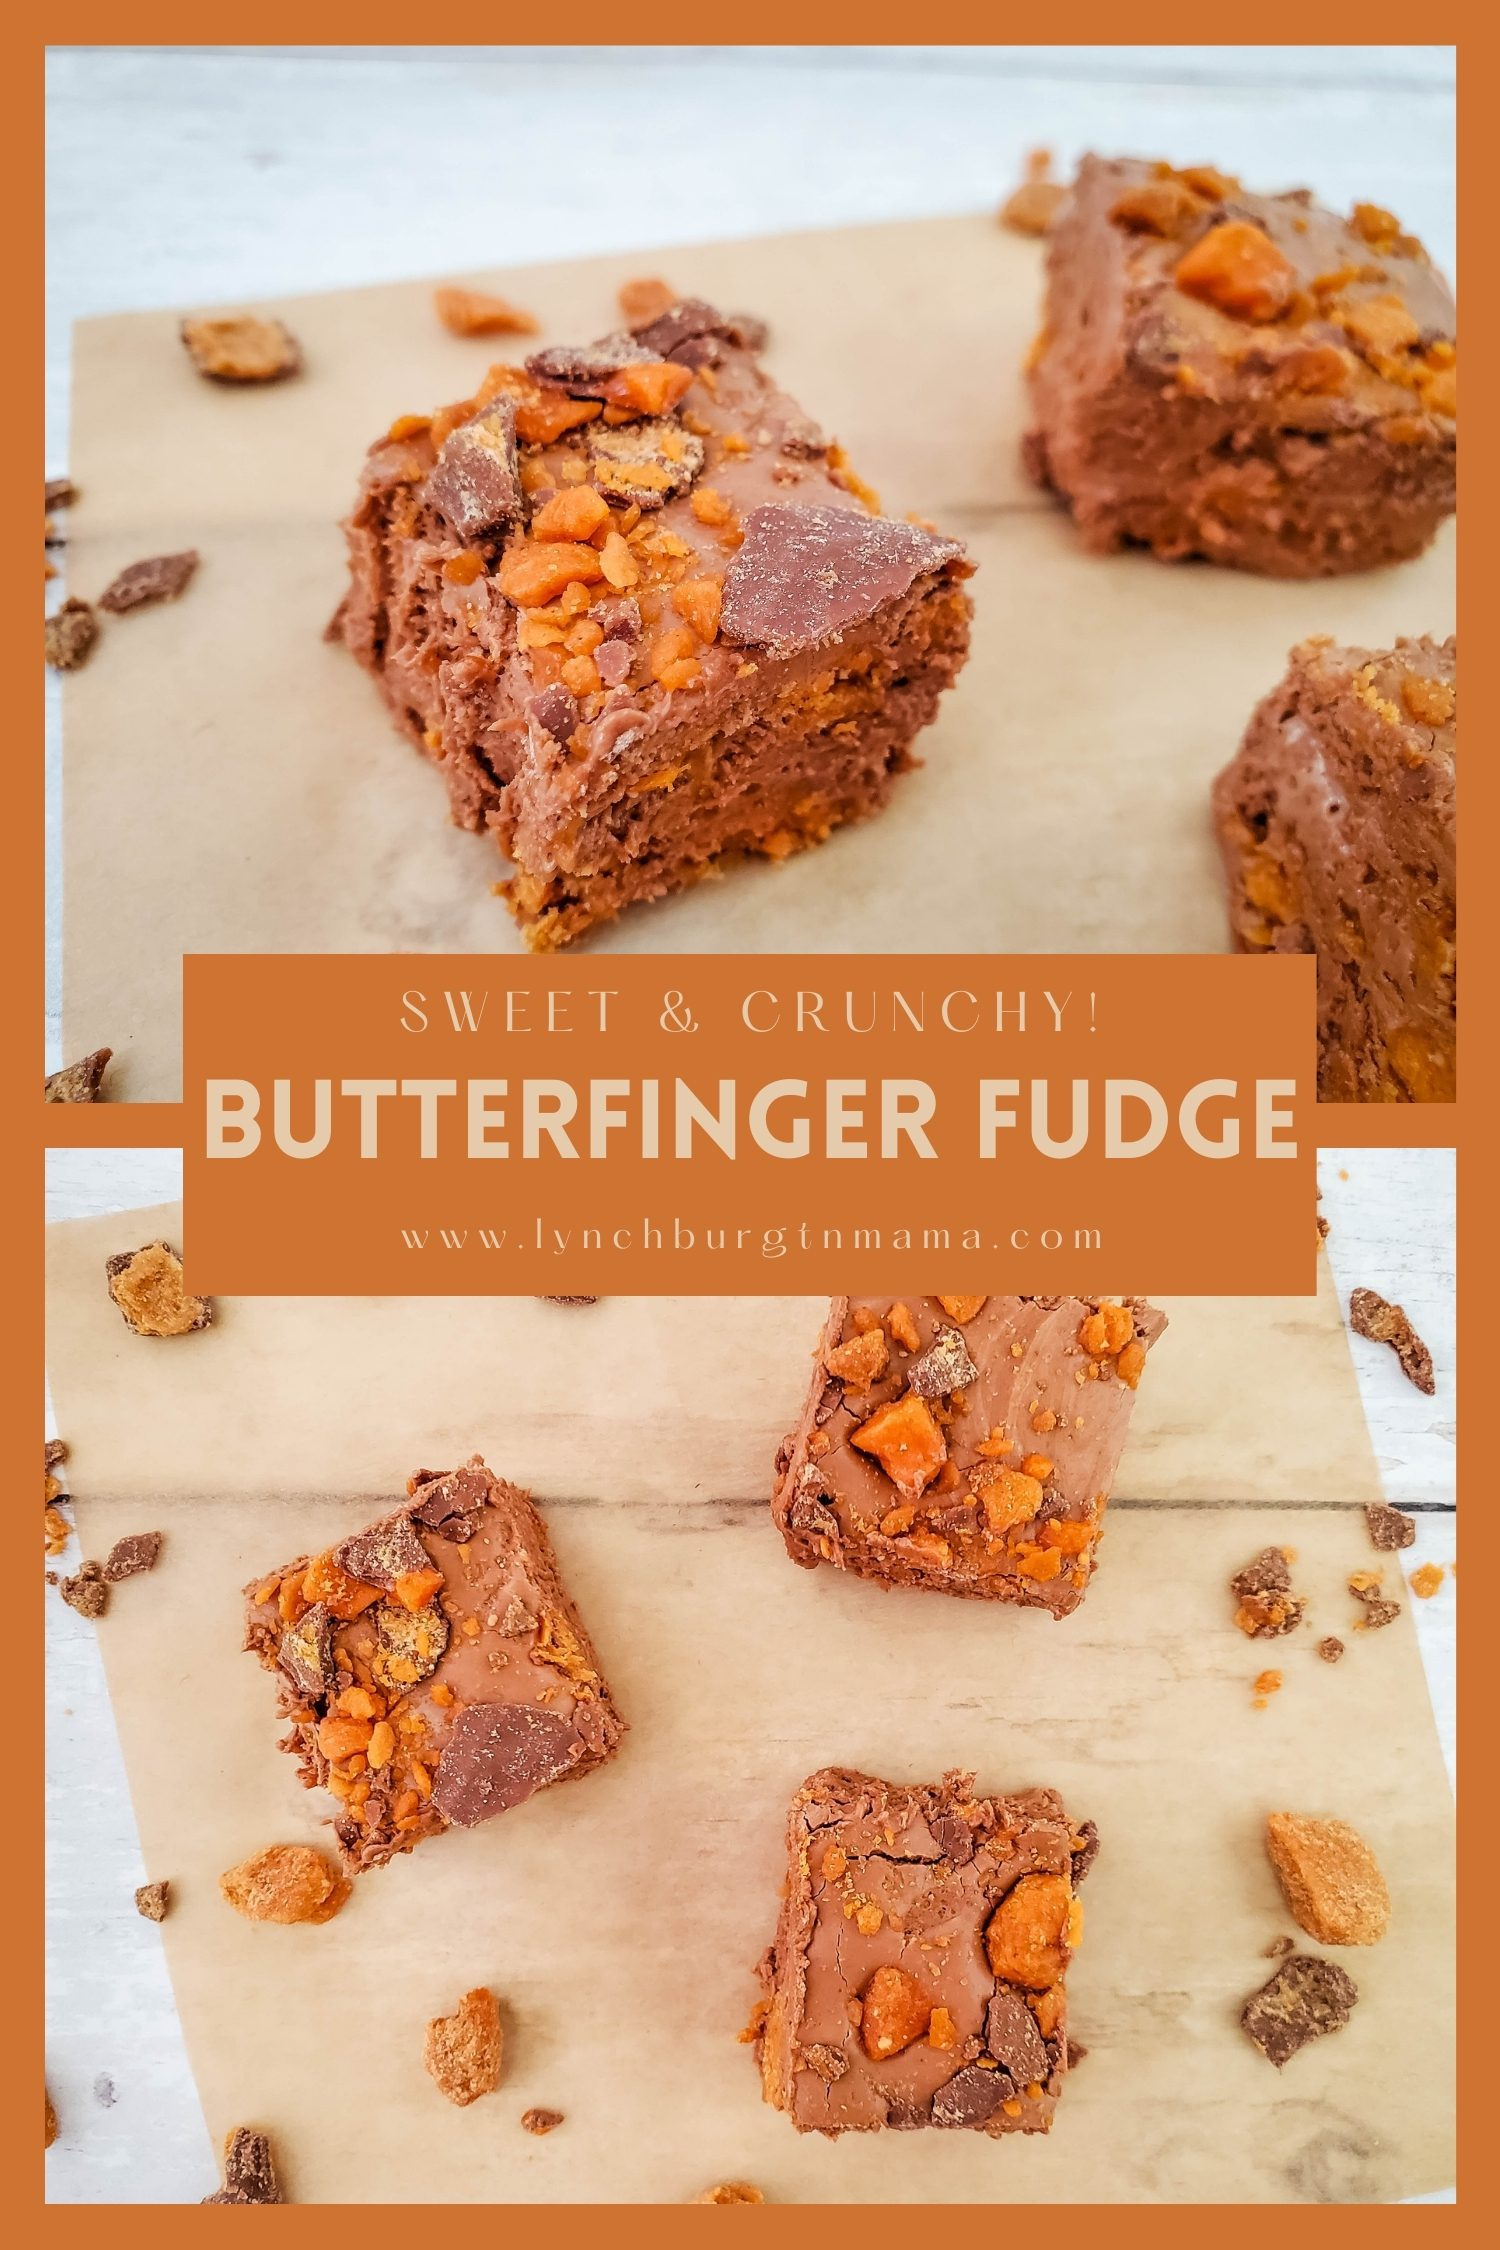 Nobody better lay a finger on my Butterfinger Fudge! This recipe offers a sweet crunch that delicately melts in your mouth with each bite. These little bites of sweetness are perfect for snacks, parties, holidays, and more. Give them a try this week and enjoy!